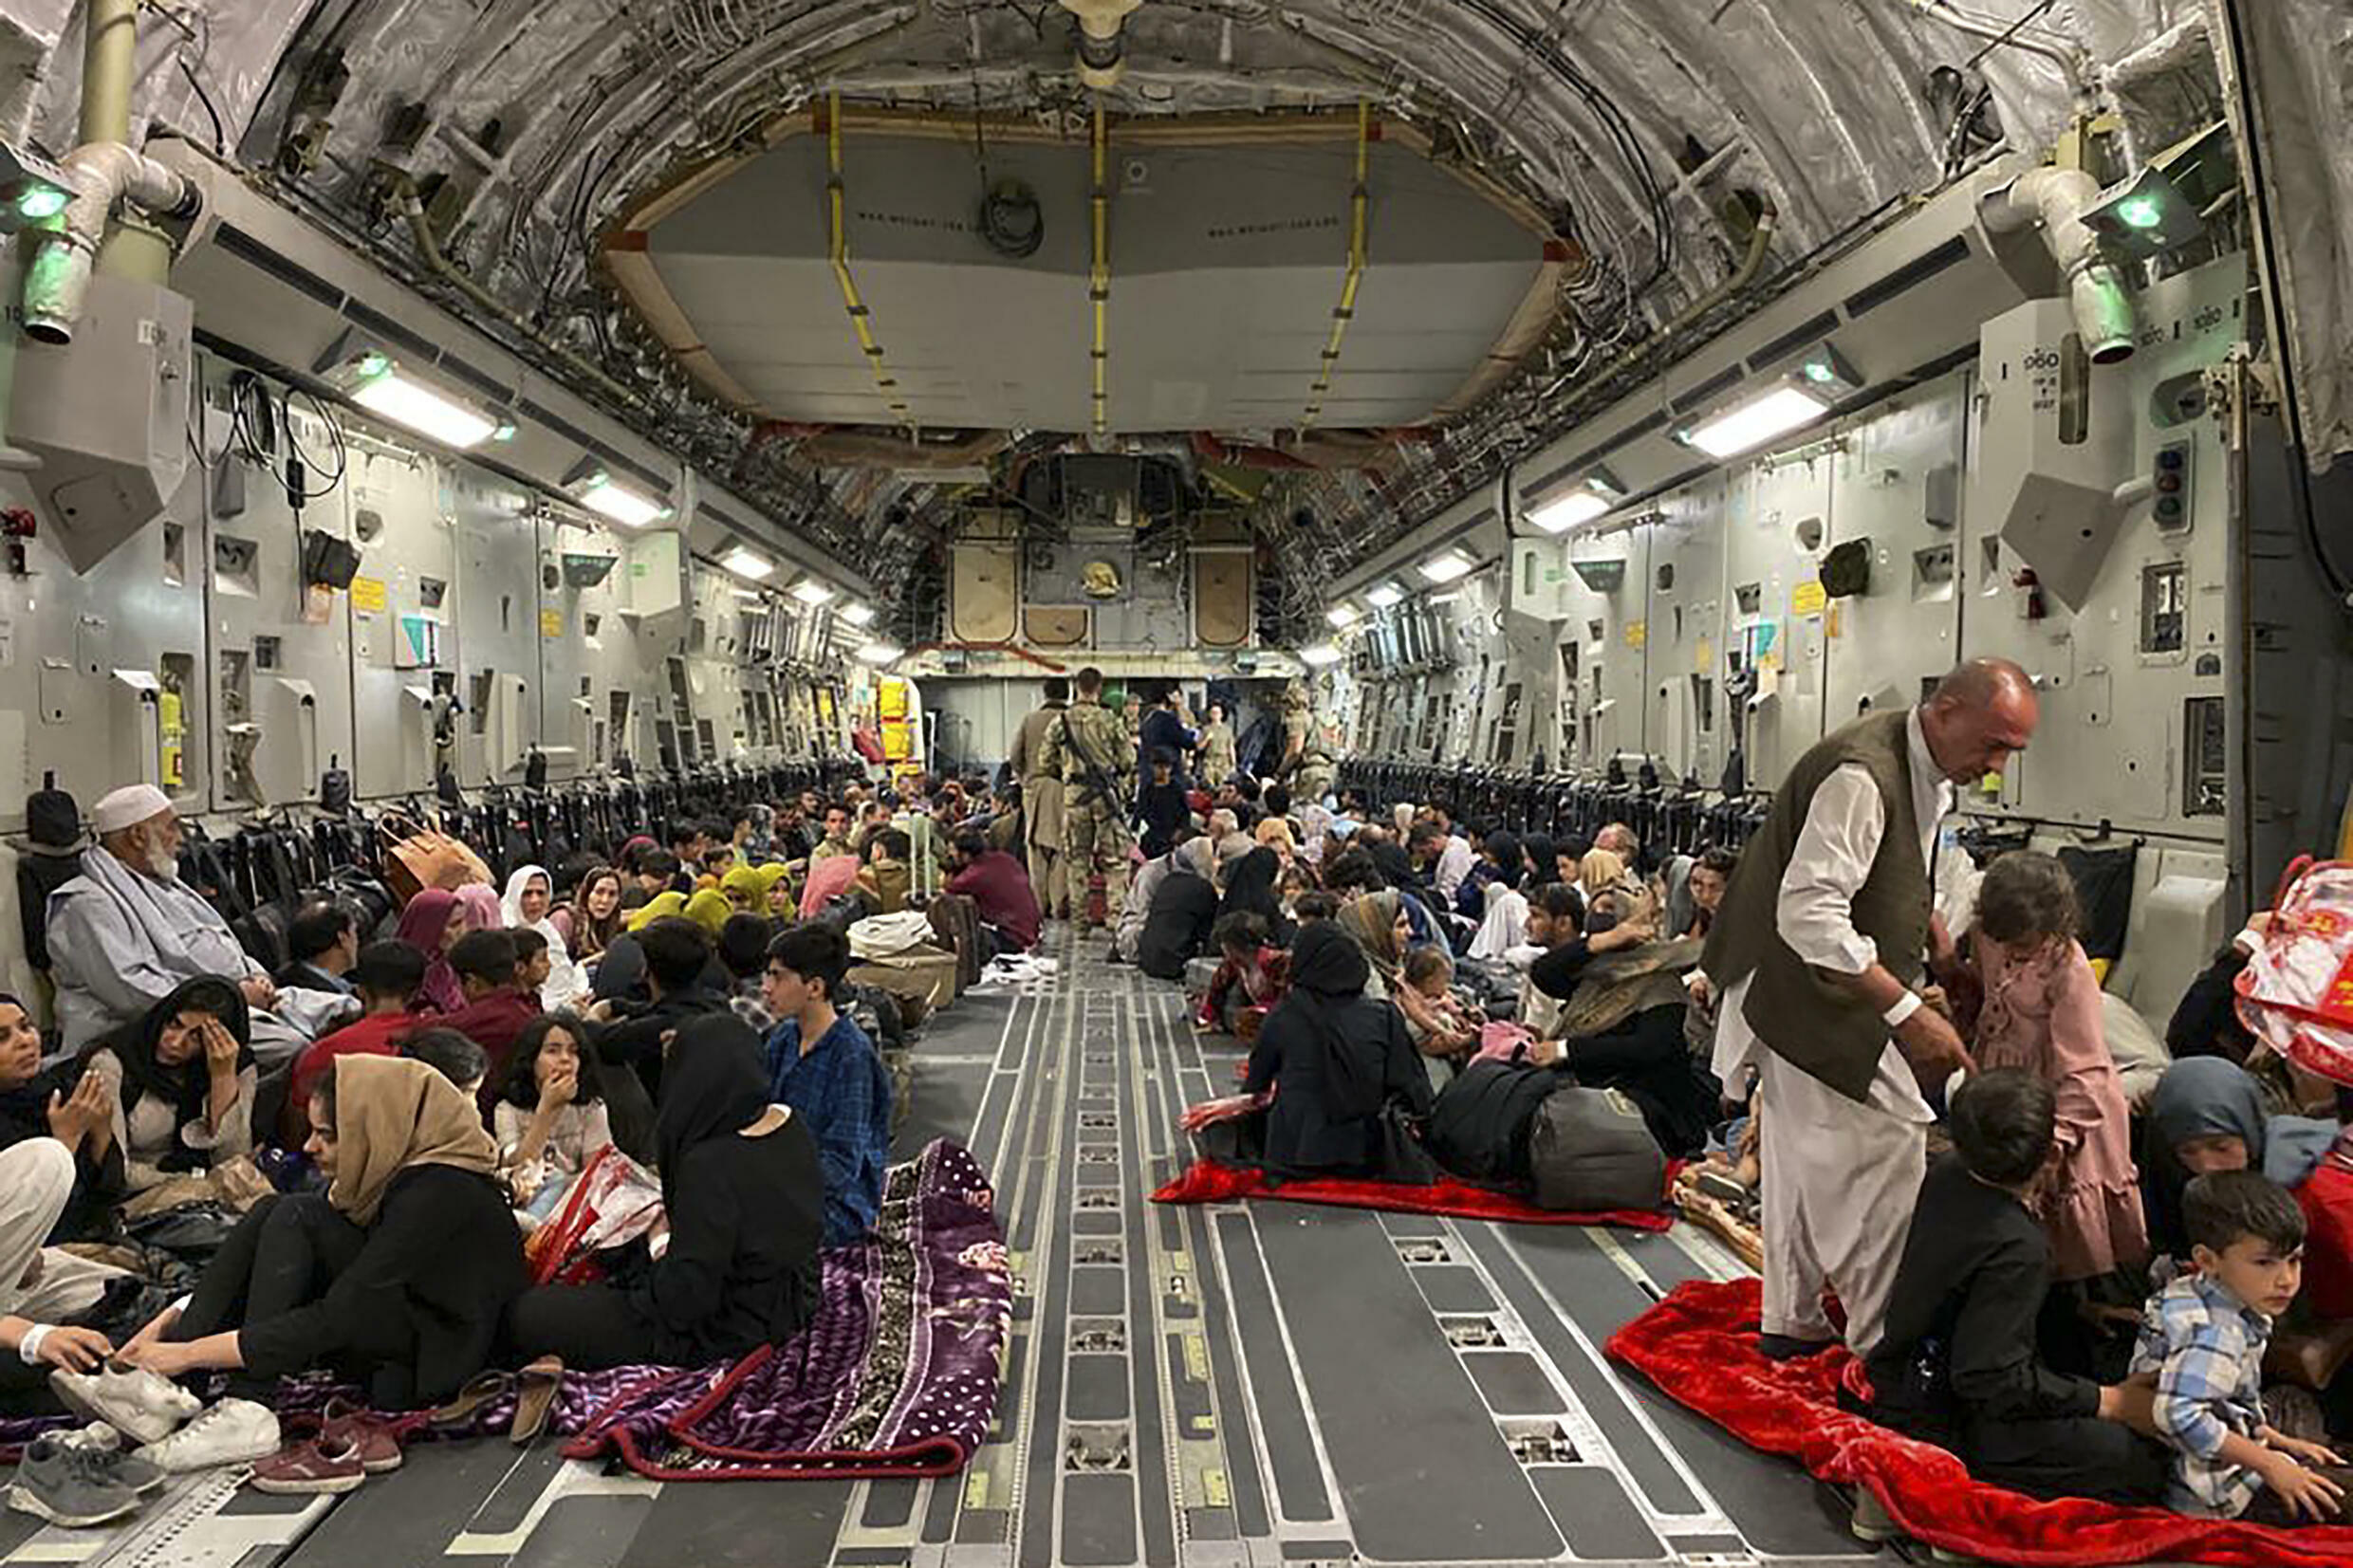 Afghans sit inside a US military aircraft as they prepare to leave Afghanistan at the military airport in Kabul